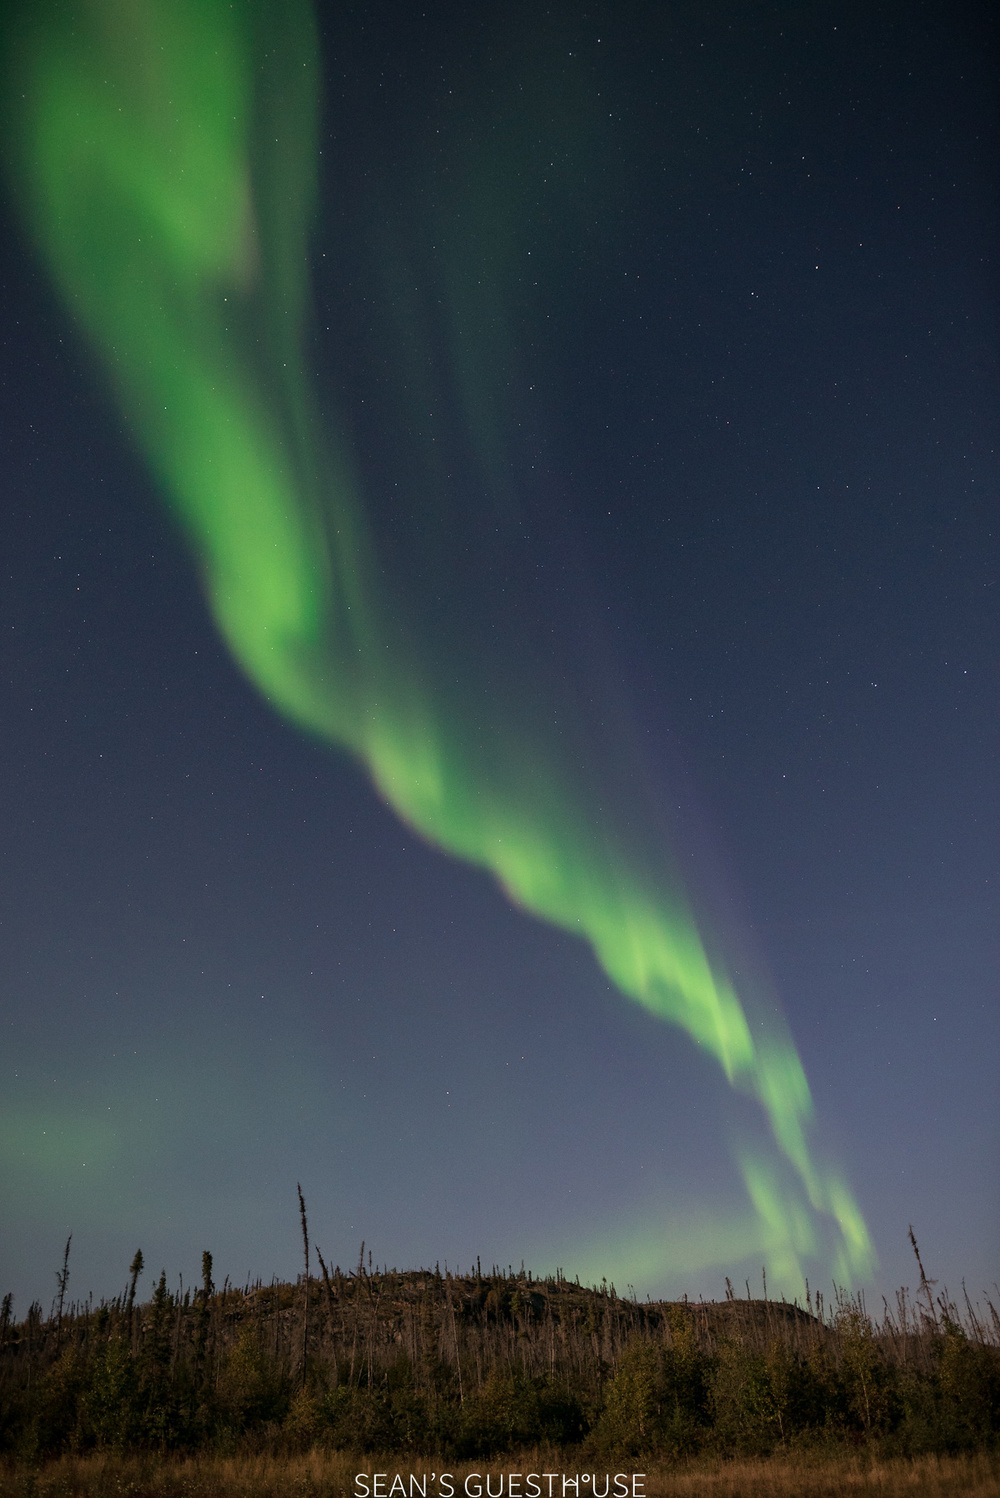 Sean's Guesthouse - Yellowknife Northern Lights Chasing - 7.jpg